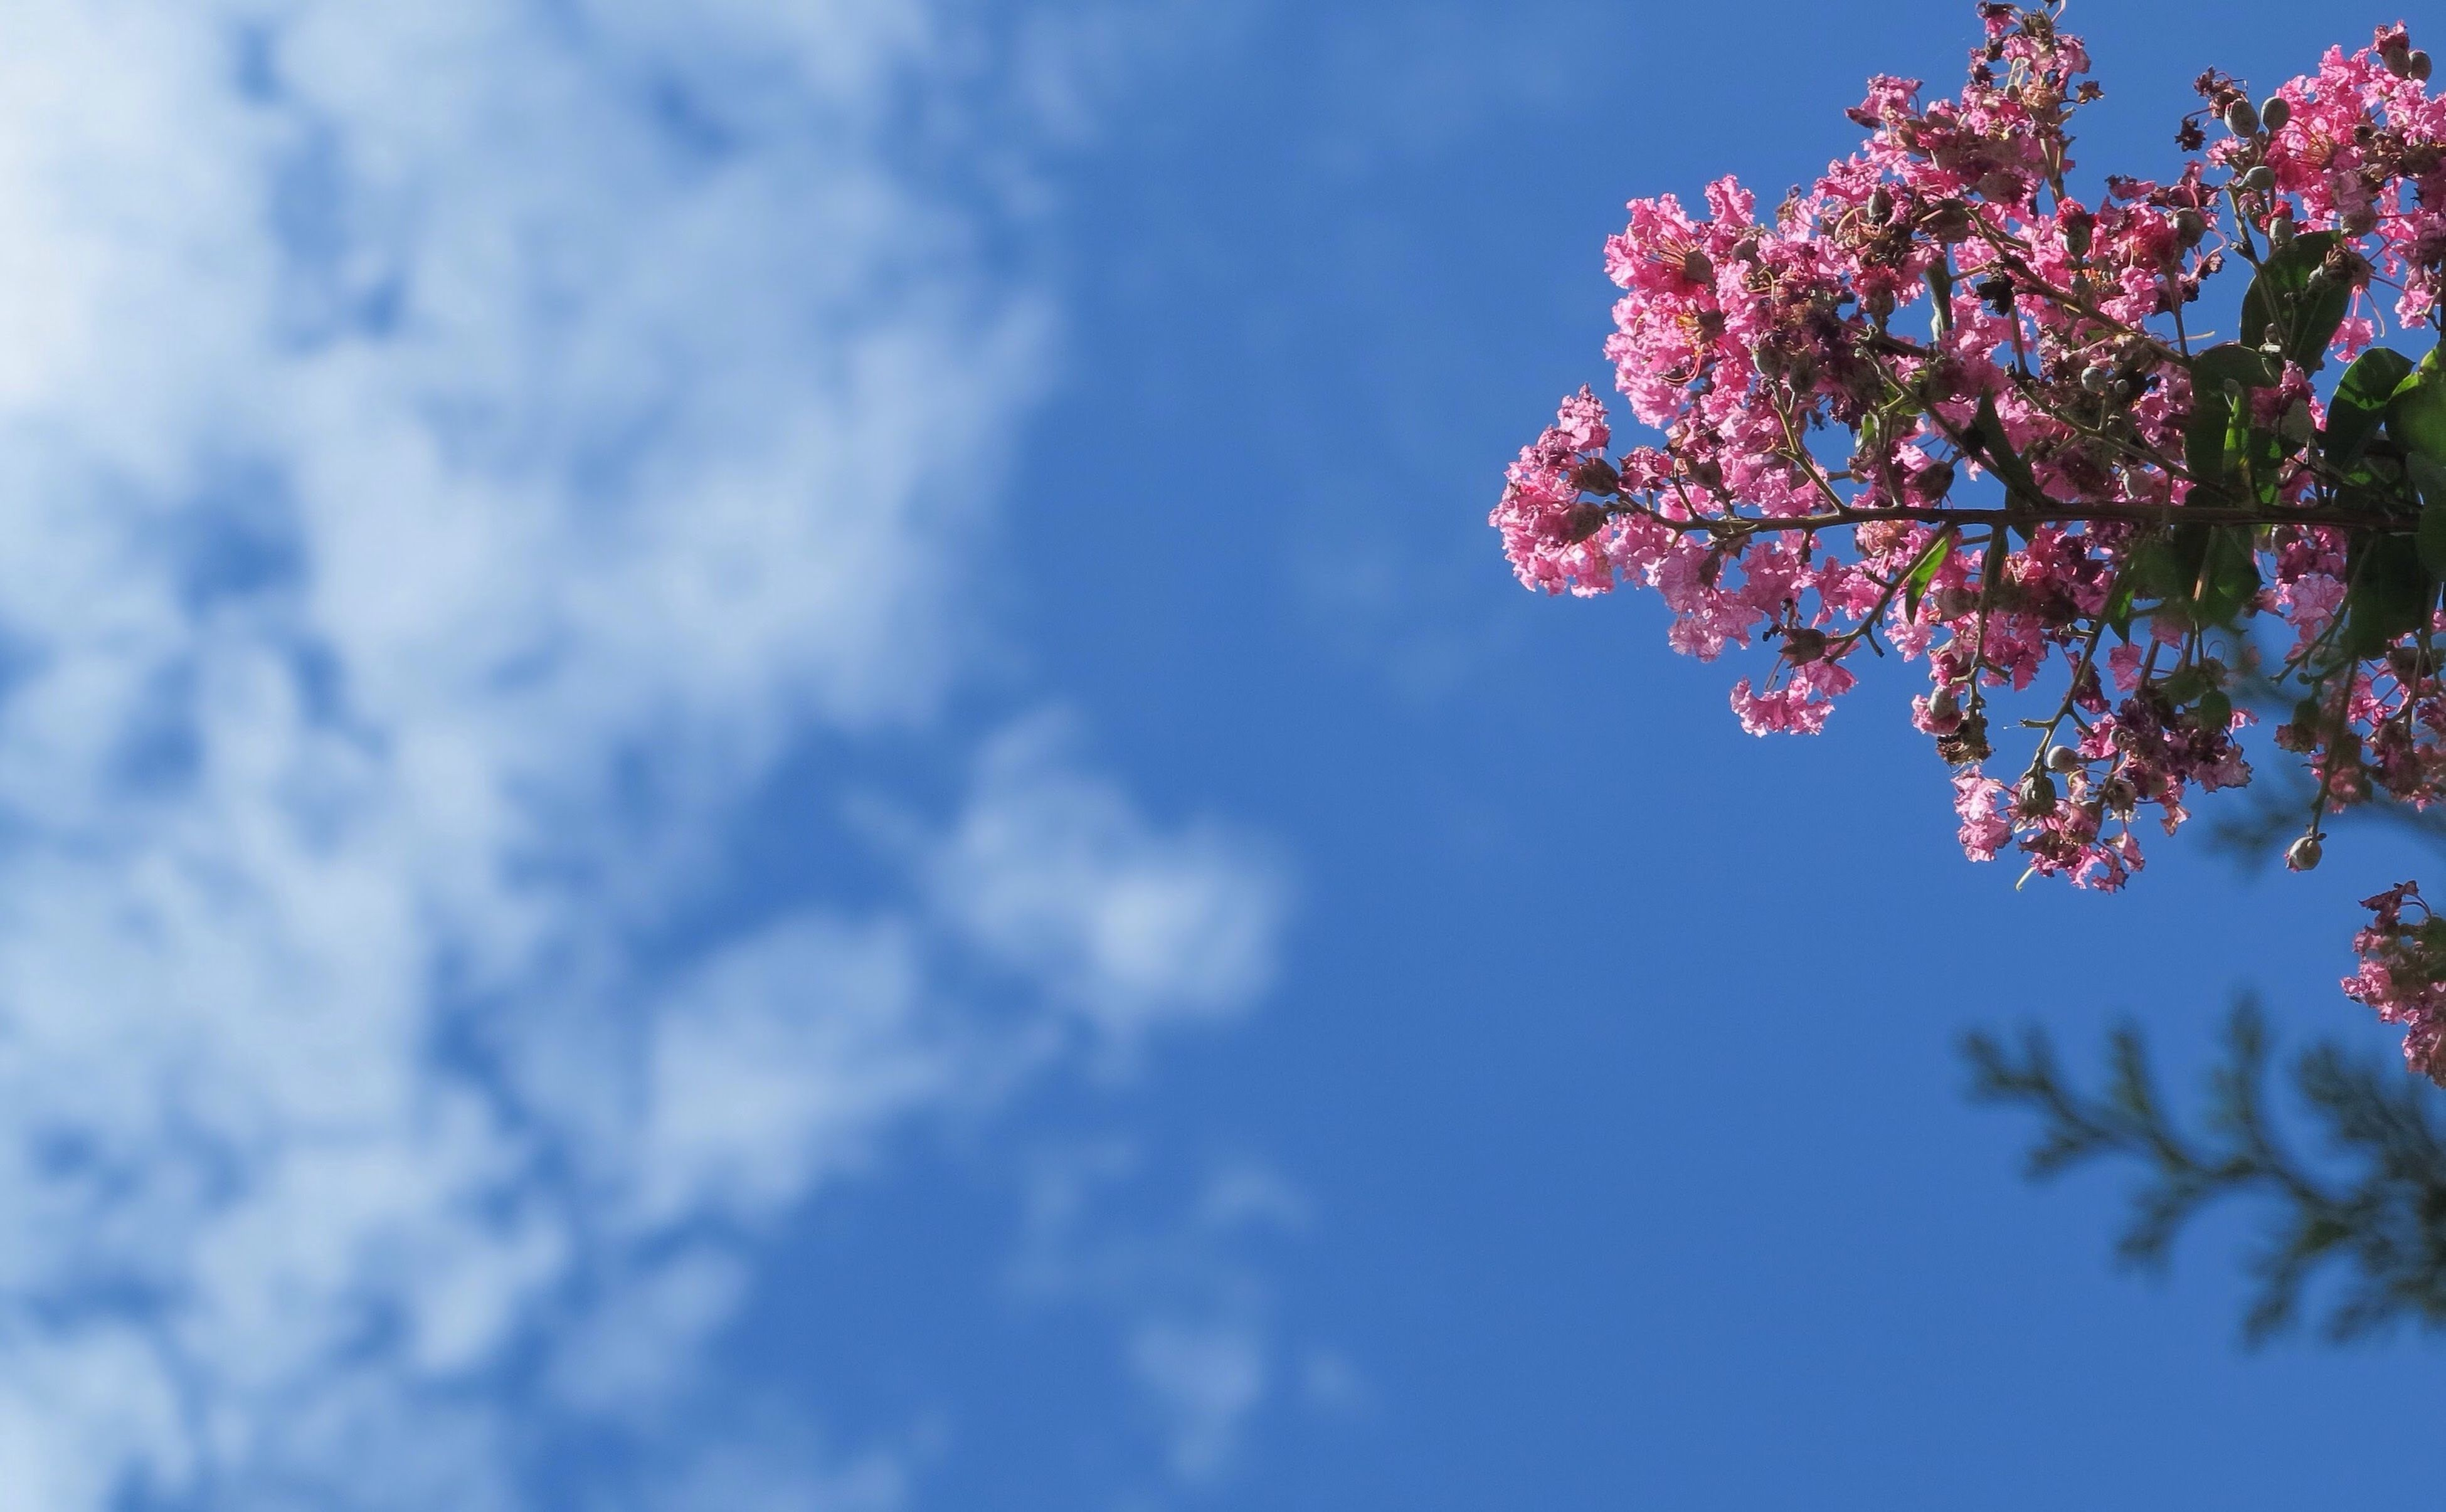 flower, low angle view, tree, sky, freshness, beauty in nature, growth, branch, pink color, nature, fragility, blossom, cloud - sky, cherry blossom, blue, day, springtime, blooming, in bloom, pink